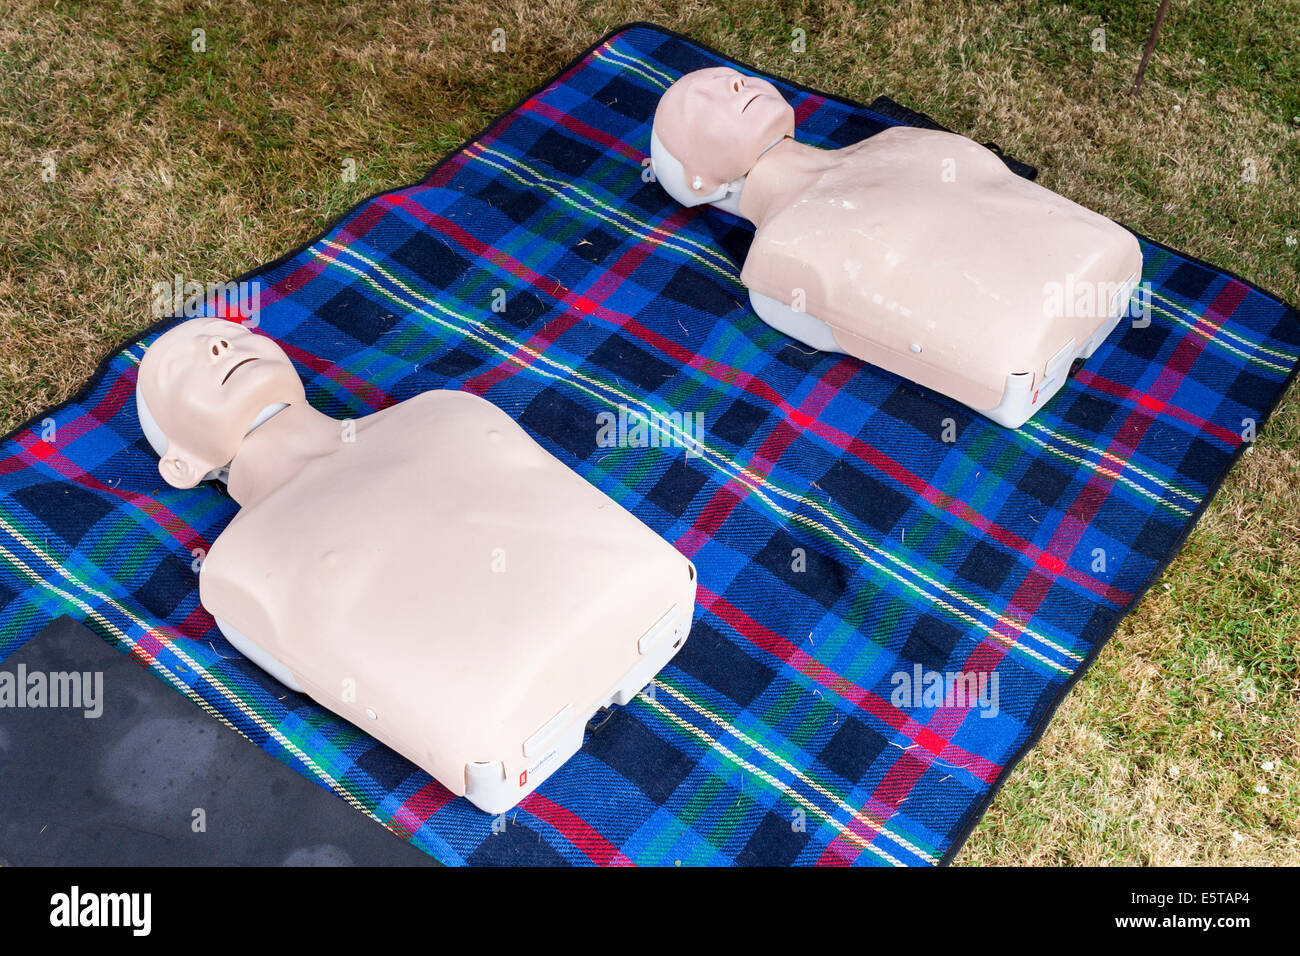 Resuscitation dummies or CPR manikins laid on a blanket for first aid training. - Stock Image